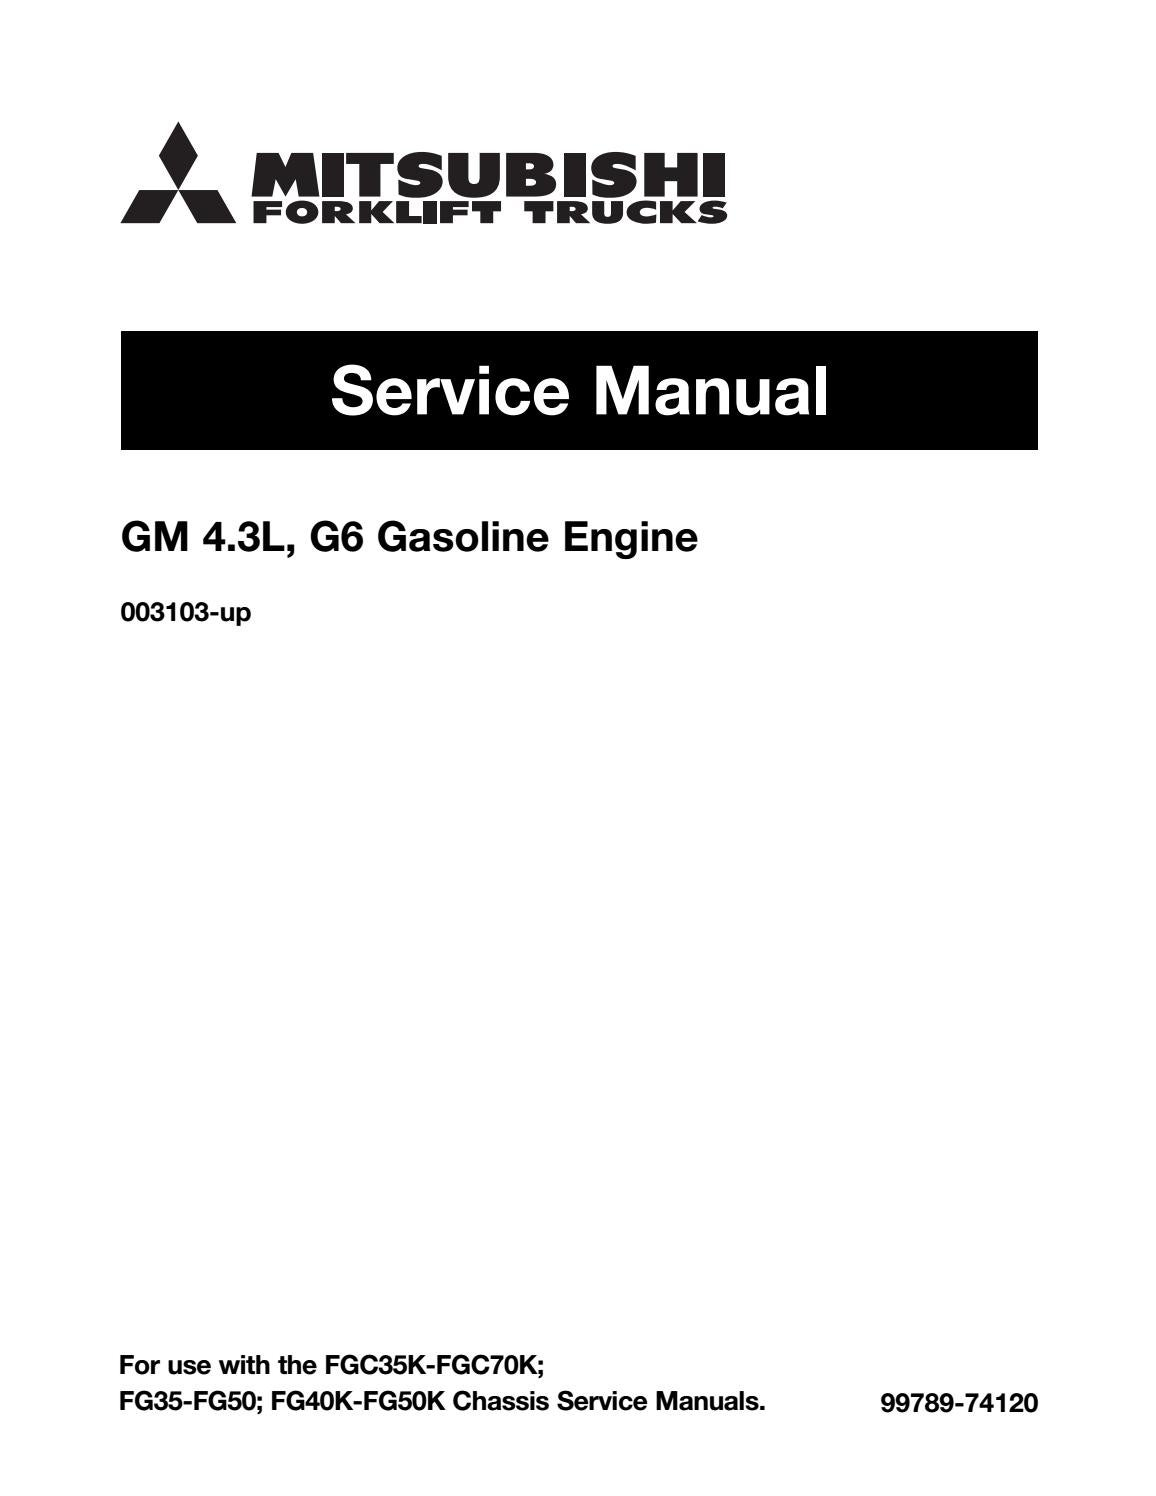 hight resolution of mitsubishi fgc70k forklift trucks engine service repair manual